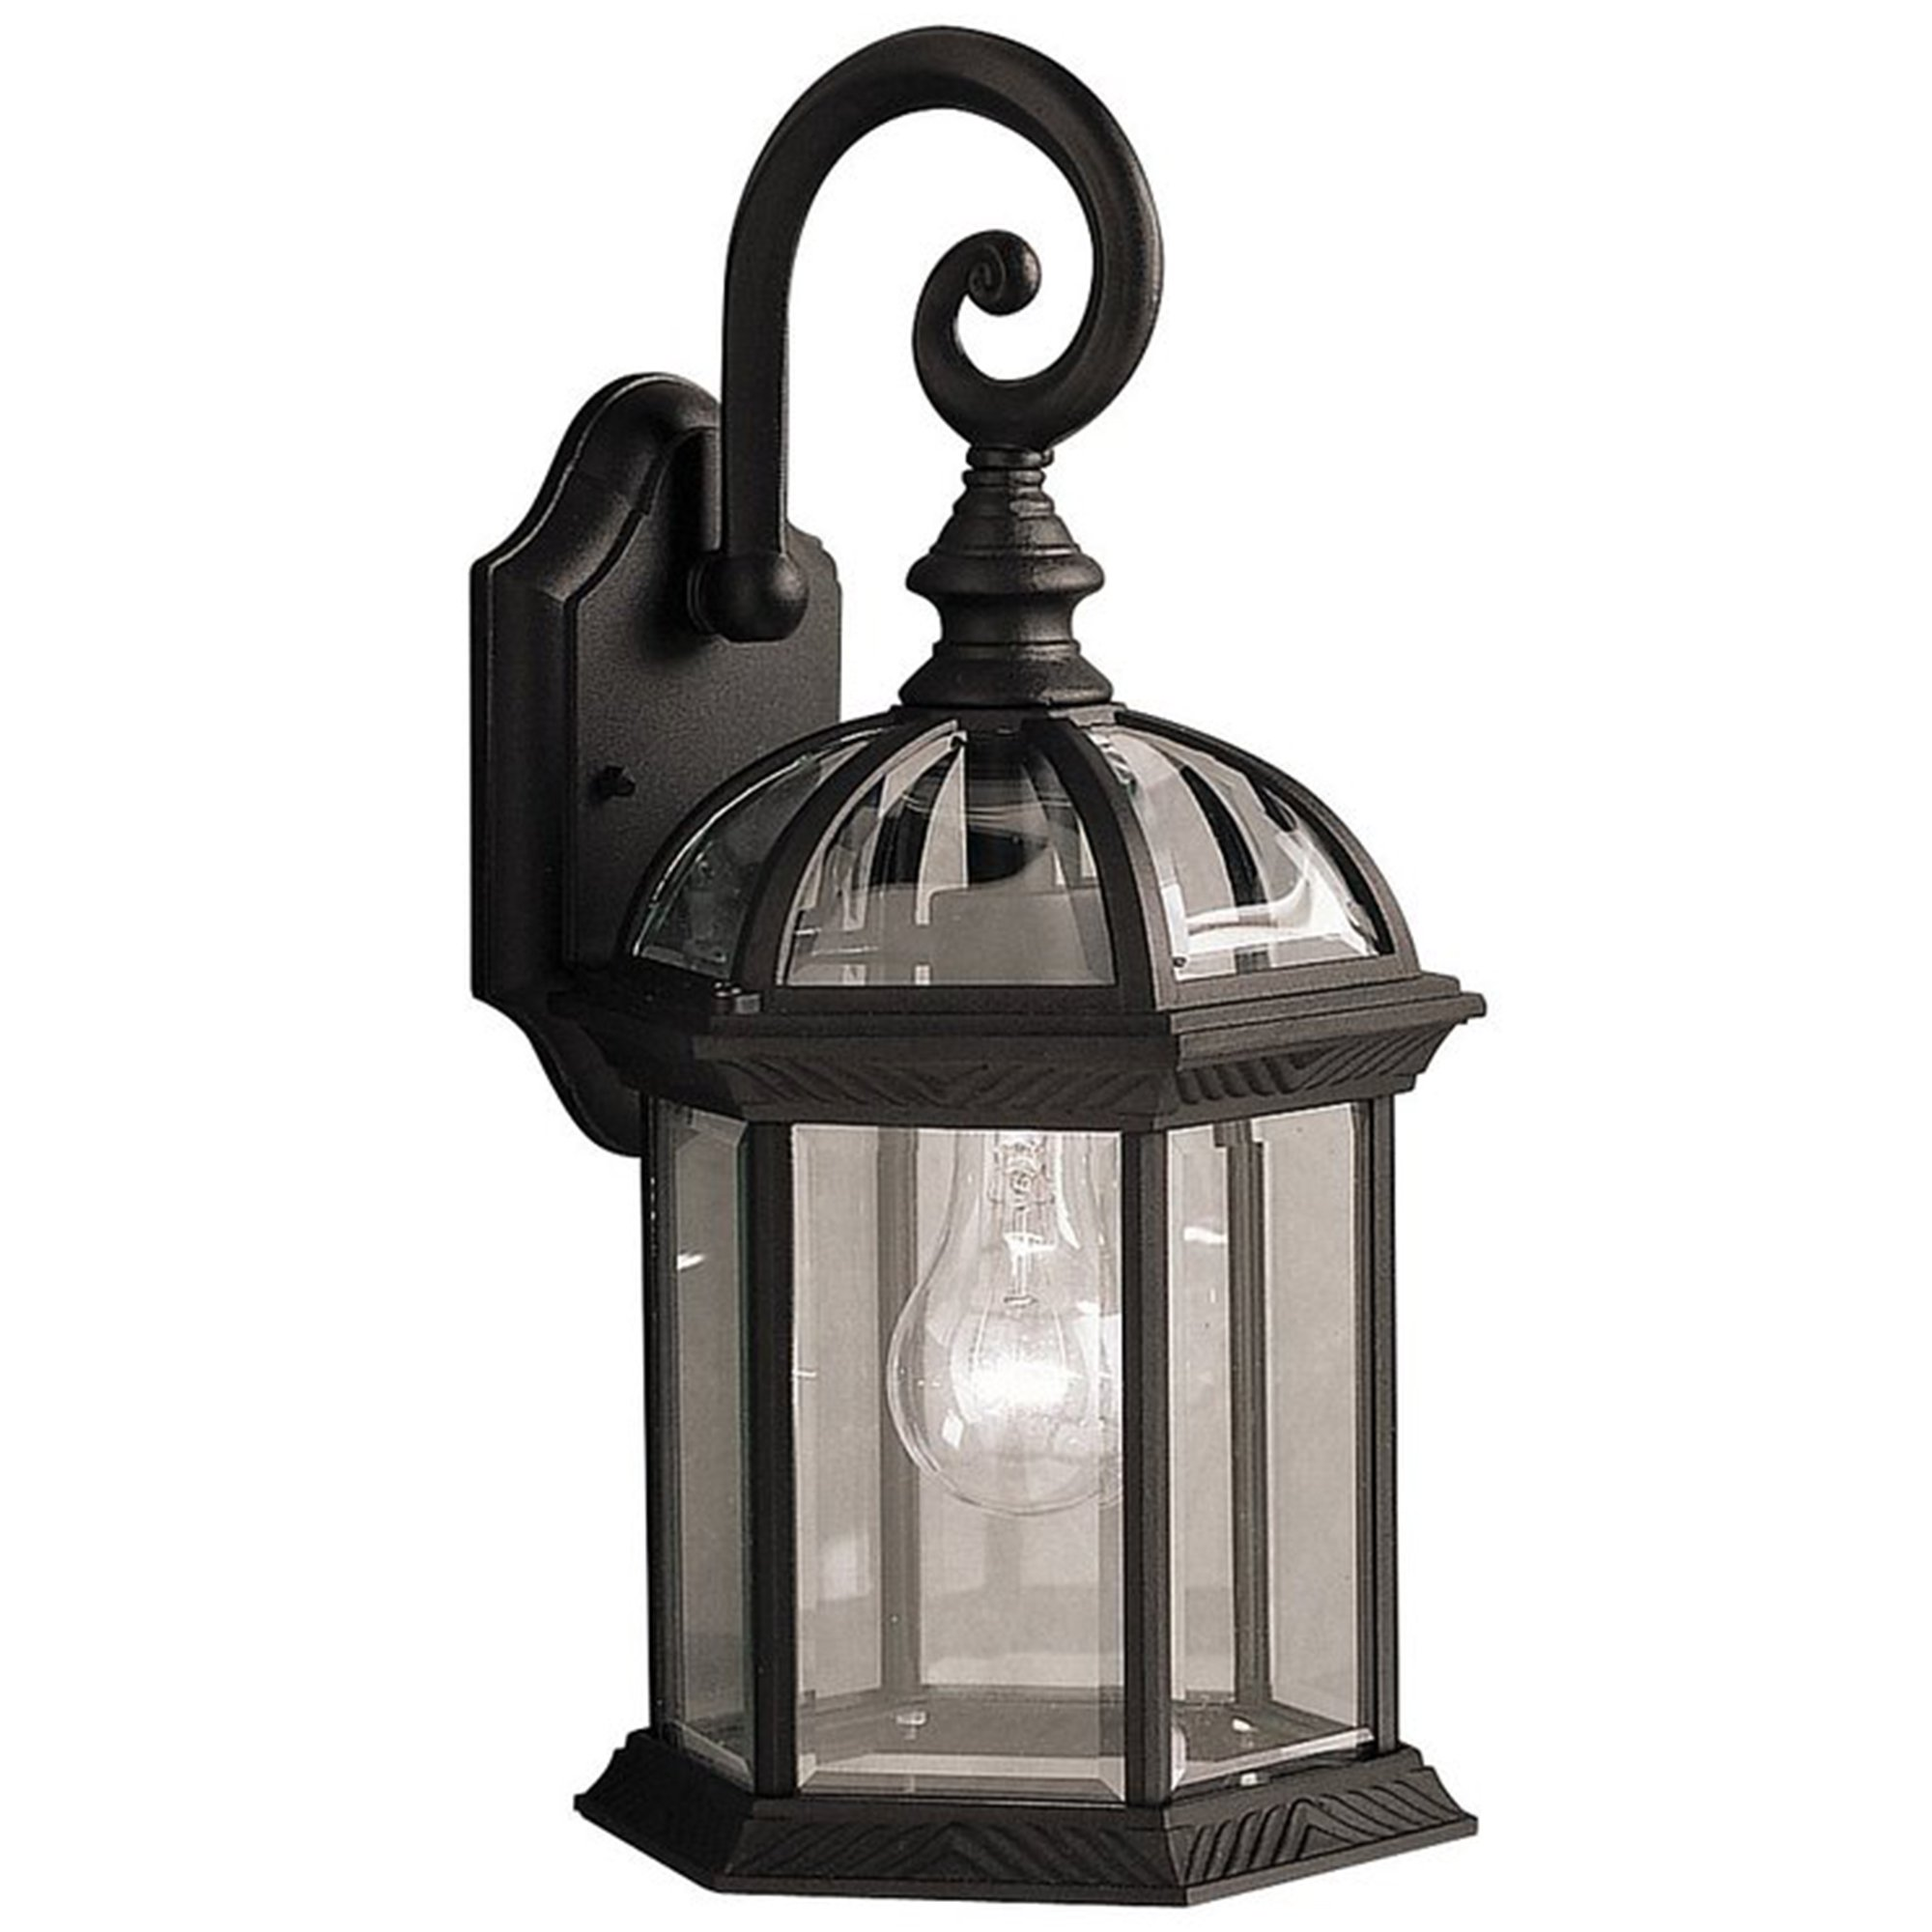 Y-Decor EL52BL Adalyn 1 Exterior Lighting in Black Finish 1 by Y Decor